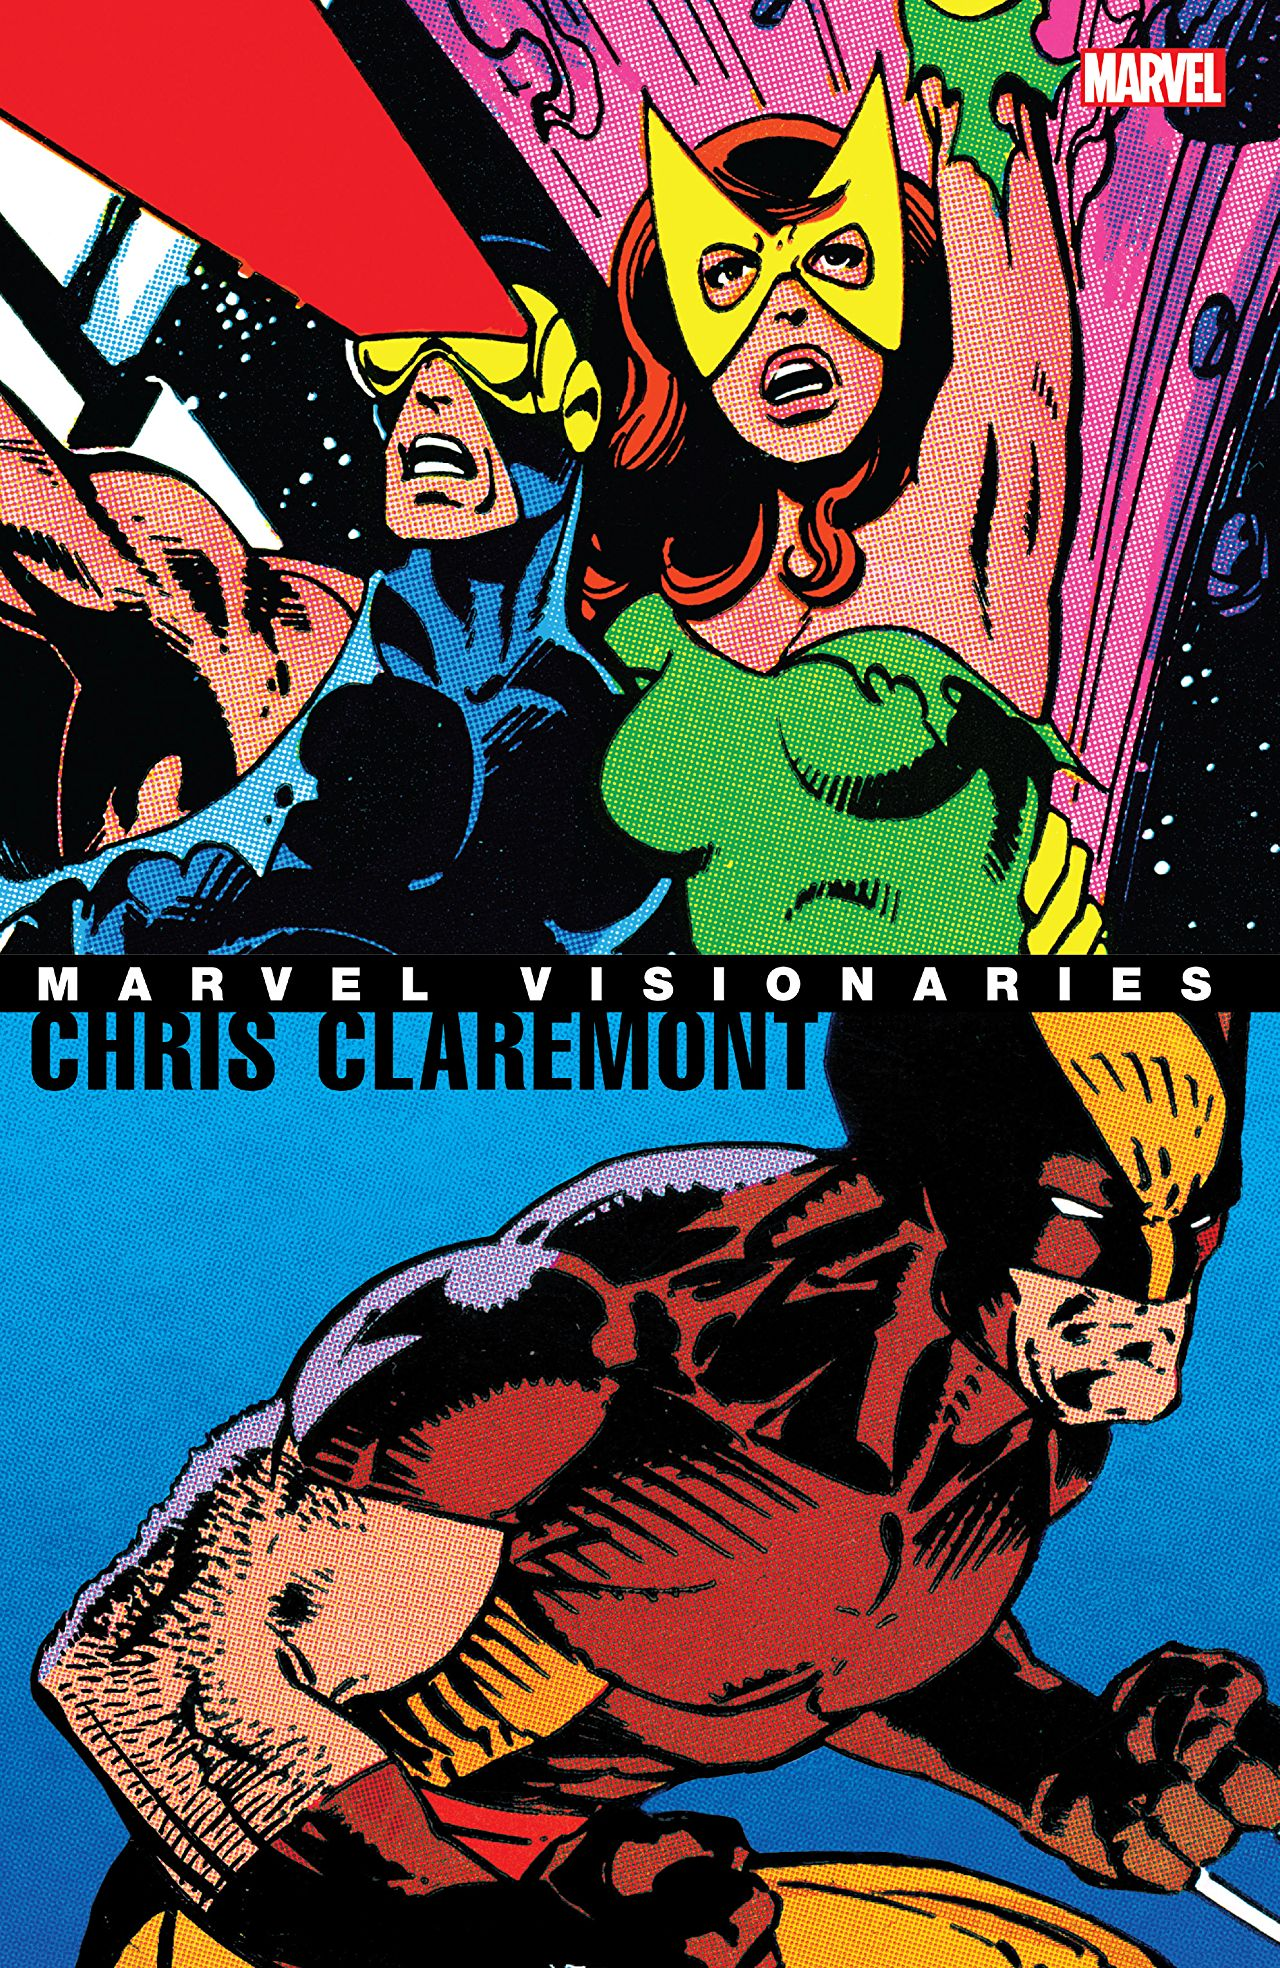 Marvel Visionaries: Chris Claremont review - Several classics in an affordable package